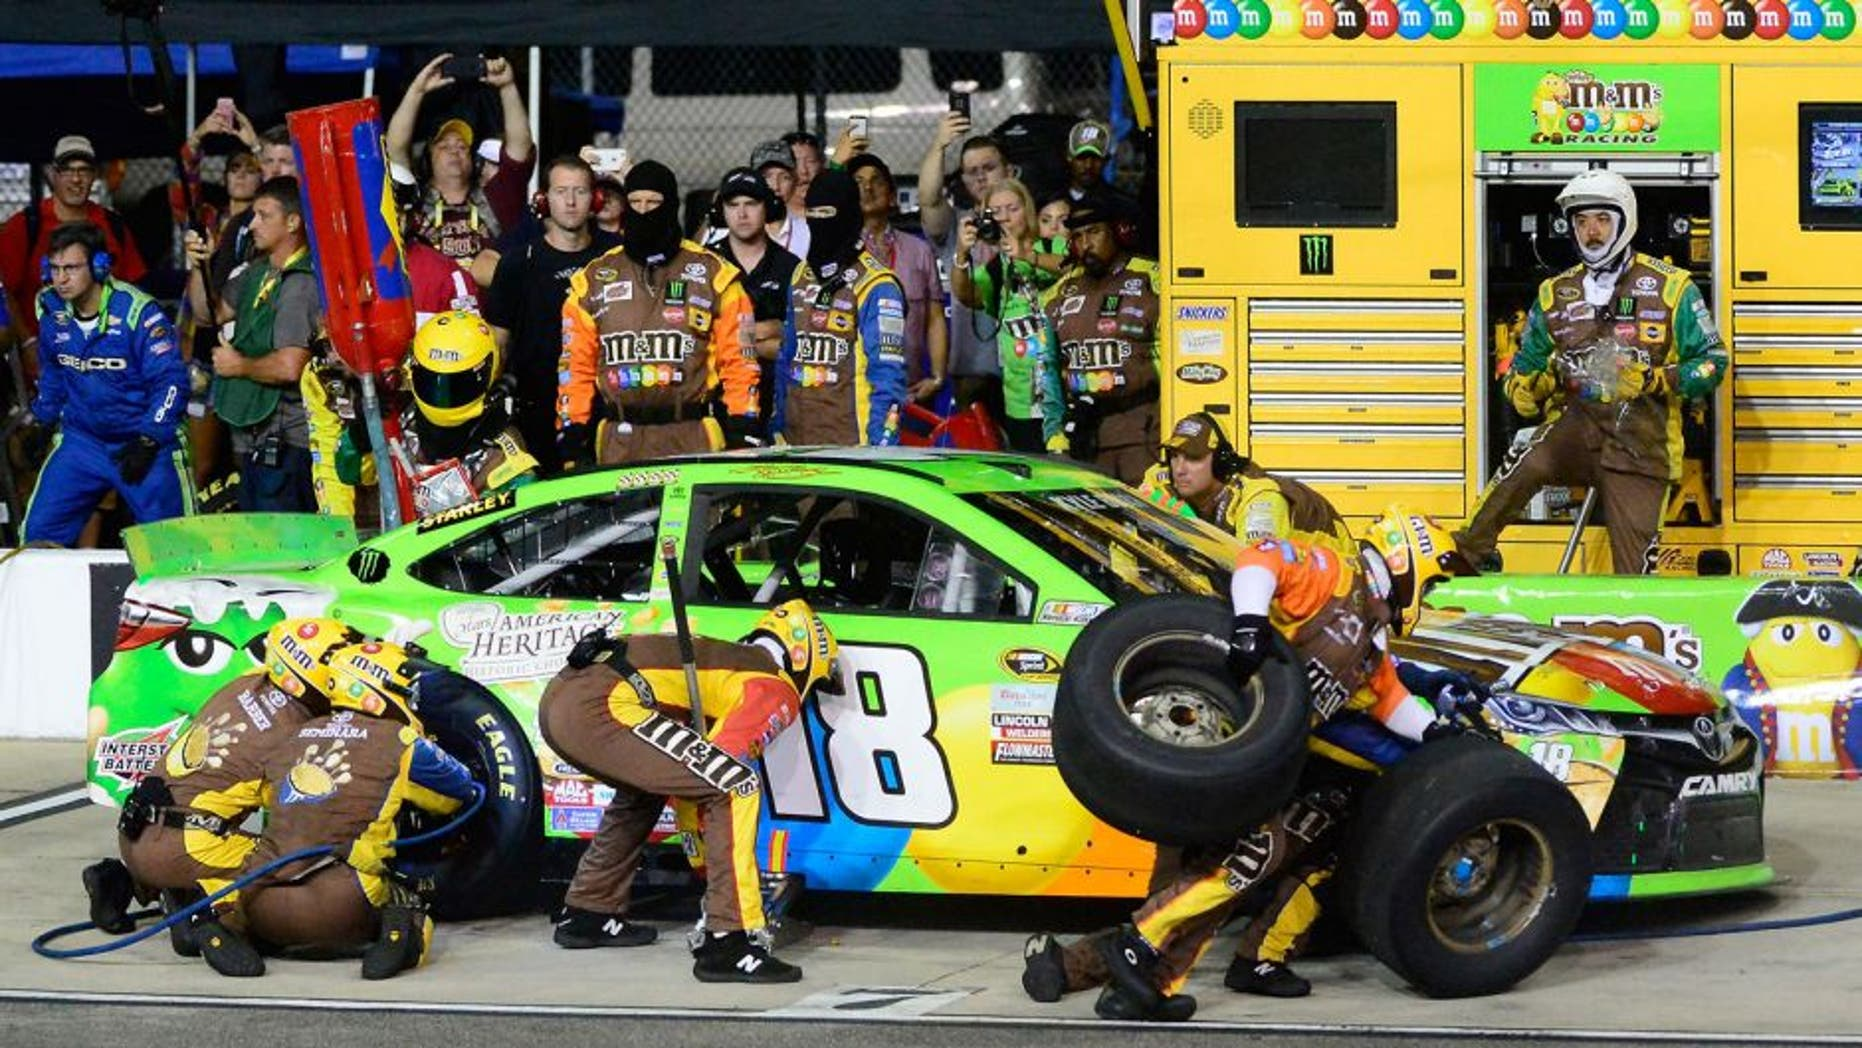 RICHMOND, VA - SEPTEMBER 12: Kyle Busch, driver of the #18 M&M's Crispy/American Heritage Chocolate Toyota, pits during the NASCAR Sprint Cup Series Federated Auto Parts 400 at Richmond International Raceway on September 12, 2015 in Richmond, Virginia. (Photo by Robert Laberge/Getty Images)